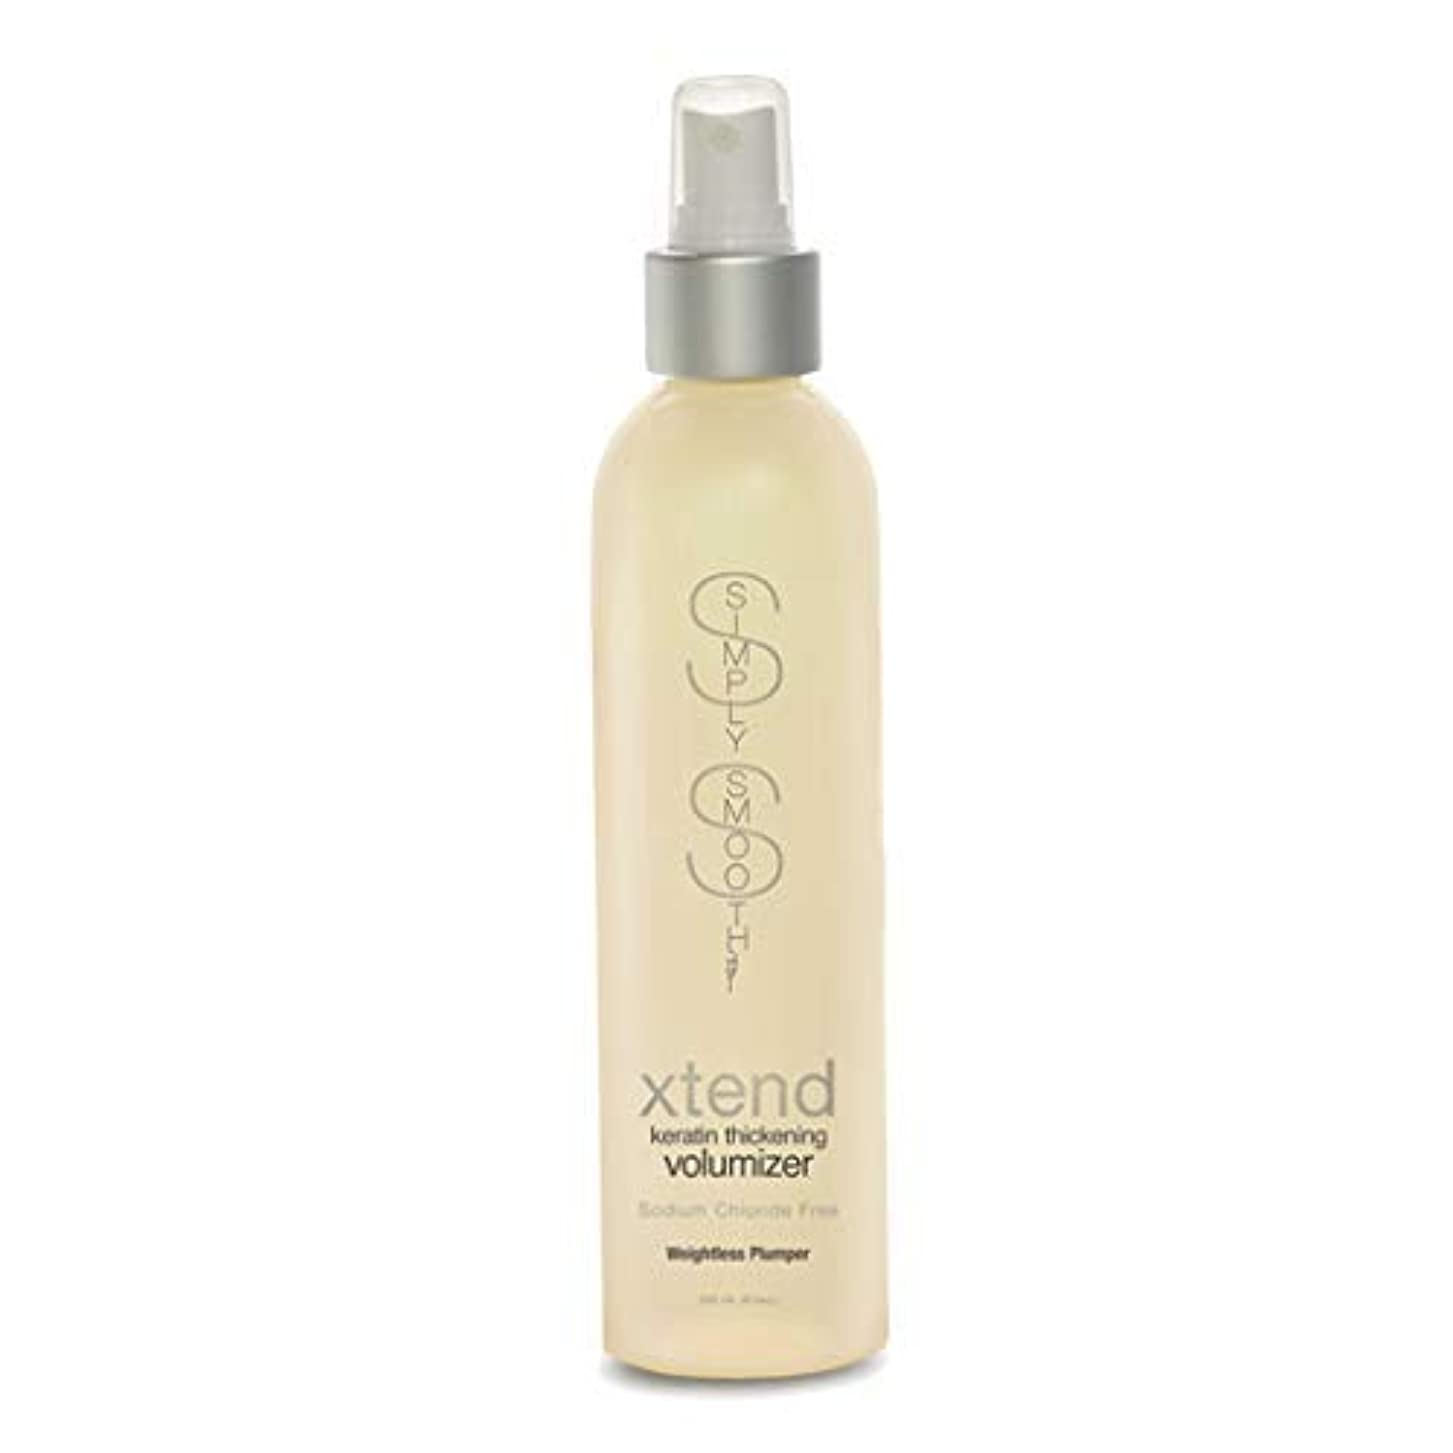 Simply Smooth Xtend Keratin Thickening Volumizer 8.5 oz. (並行輸入品)